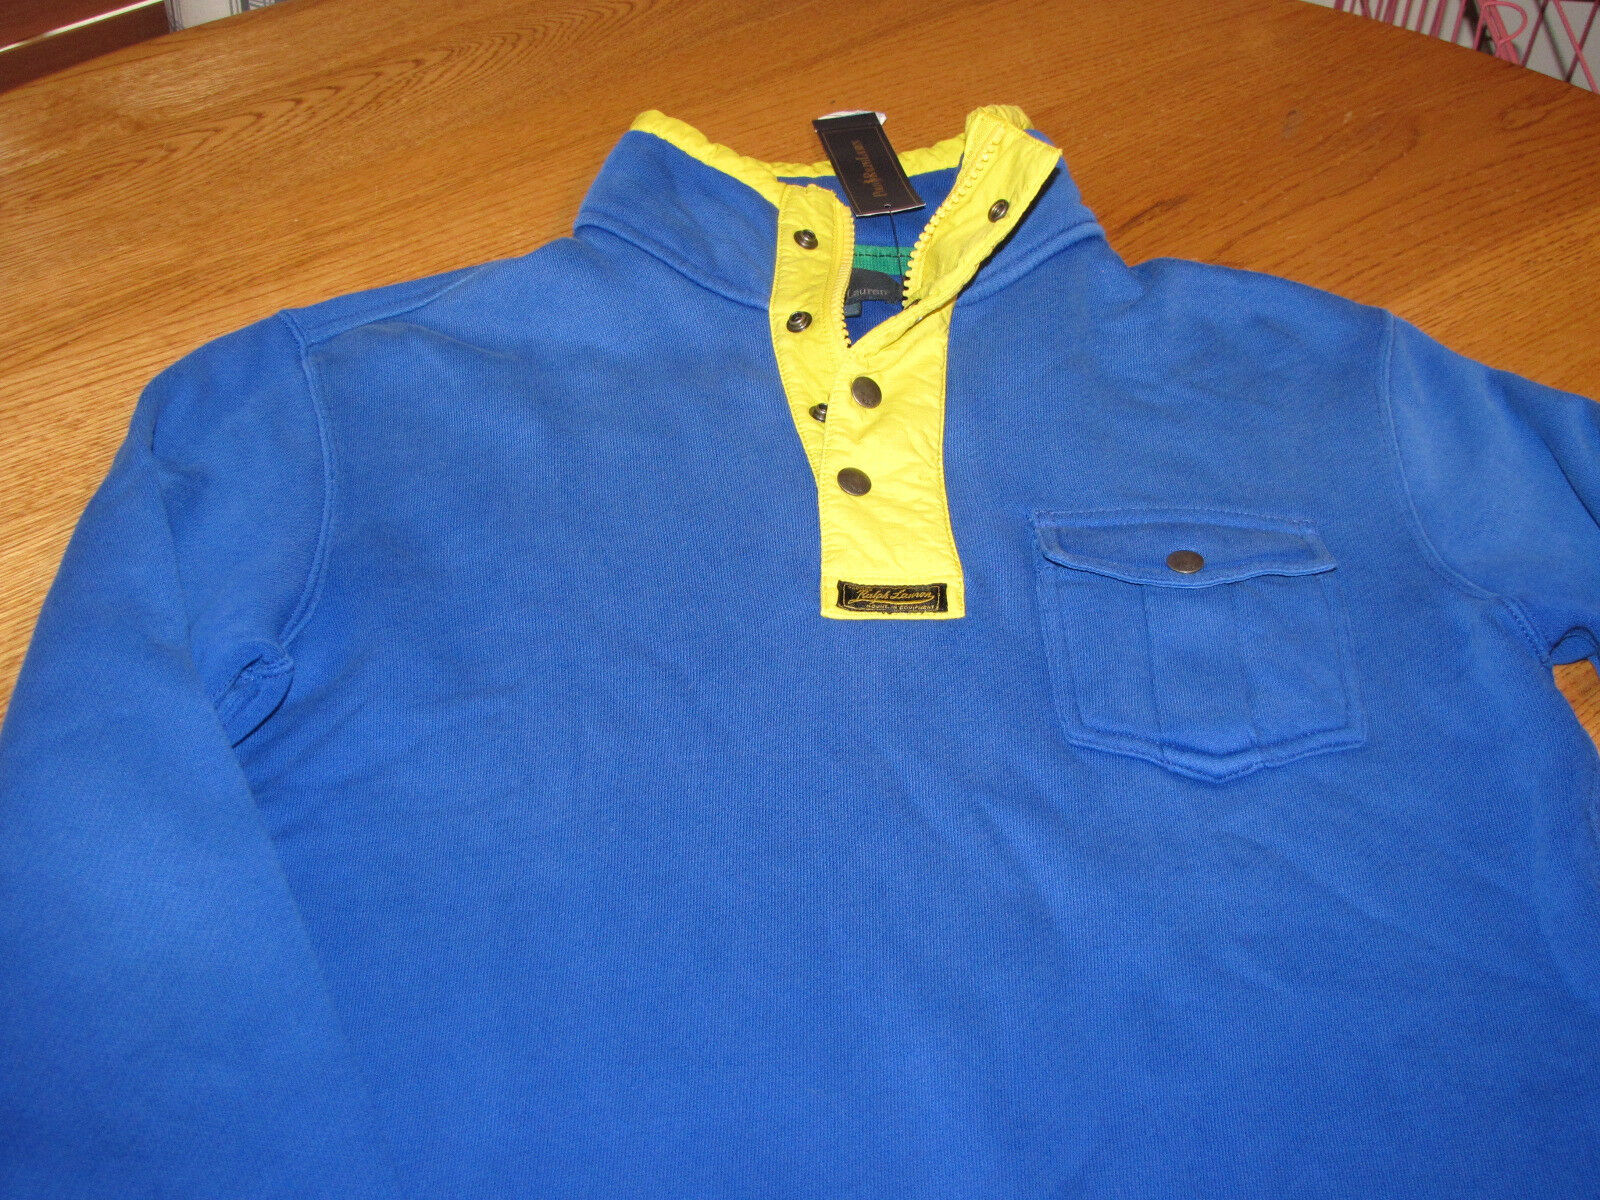 Mens Polo by Ralph Lauren M medium bluee fleece shirt  0477874 1 2 zip 3